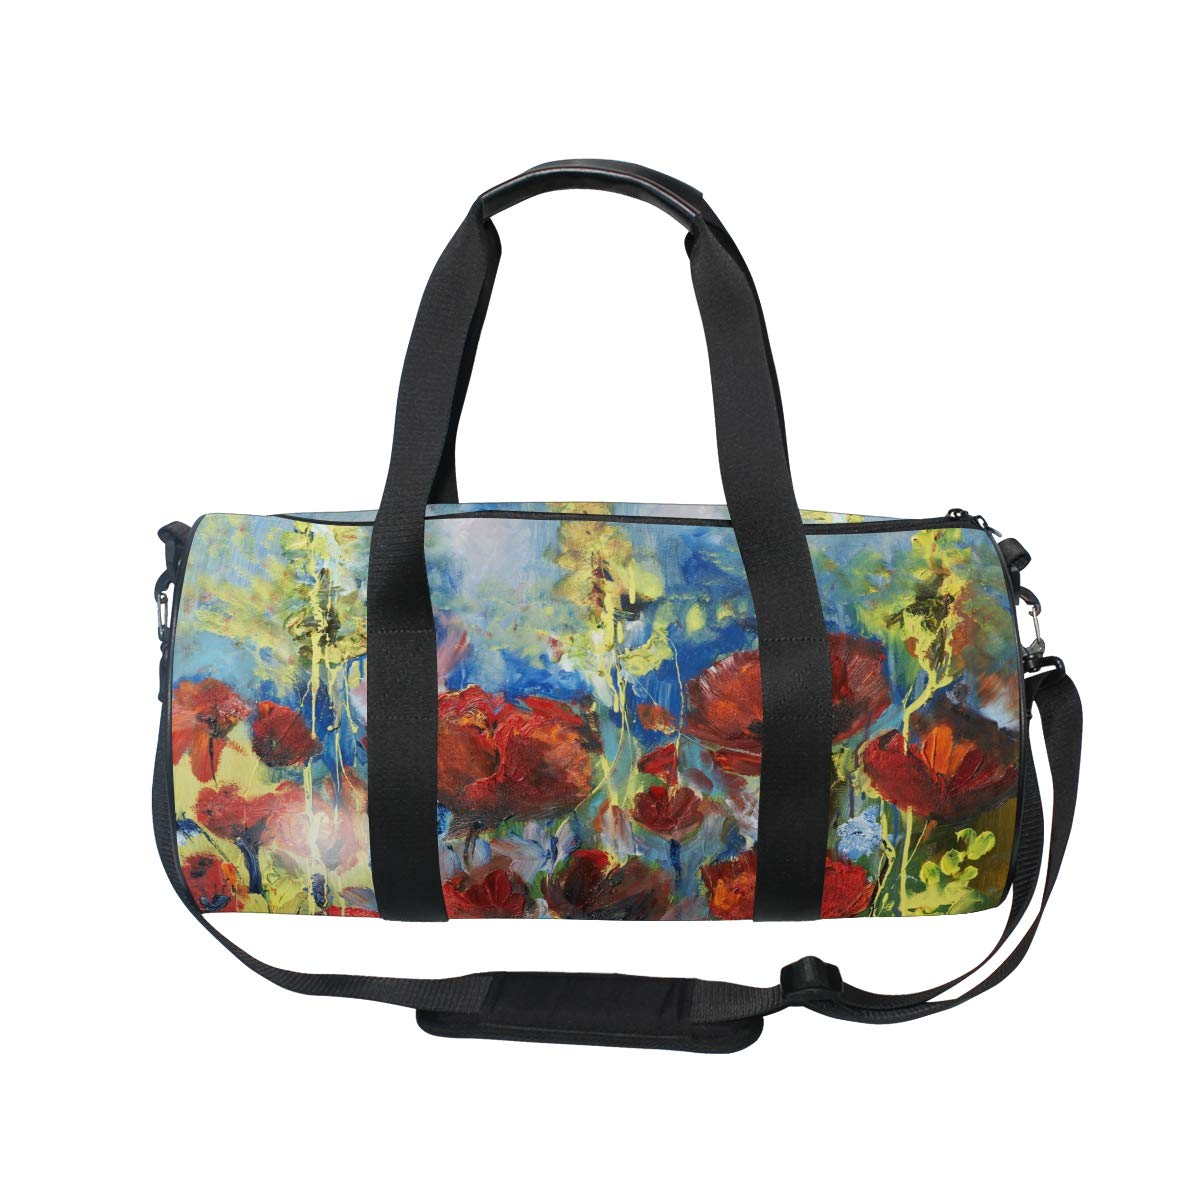 WIHVE Gym Duffel Bag Oil Painting Red Spring Poppy Sports Lightweight Canvas Travel Luggage Bag